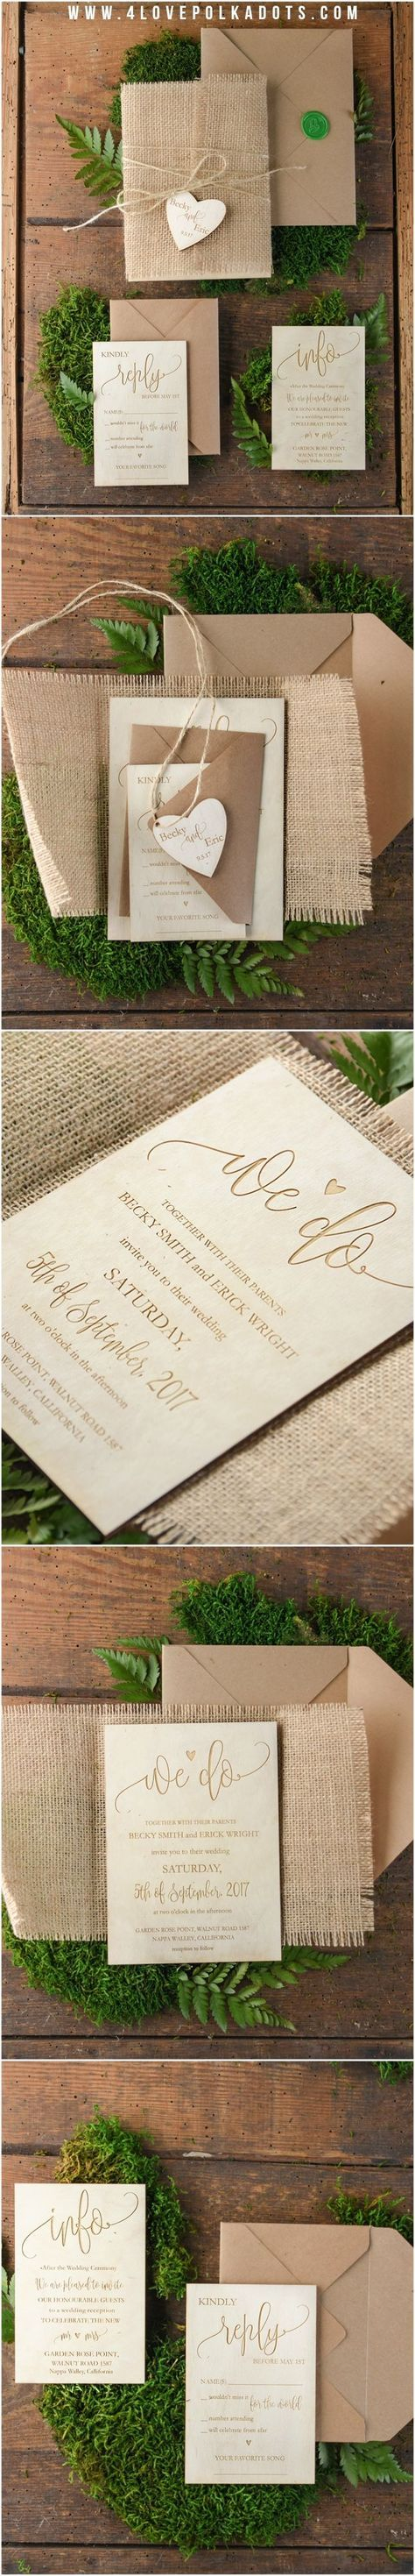 diy wedding invites rustic%0A Oh we do like a little rustic luxury  And these beautiful wedding  invitations by